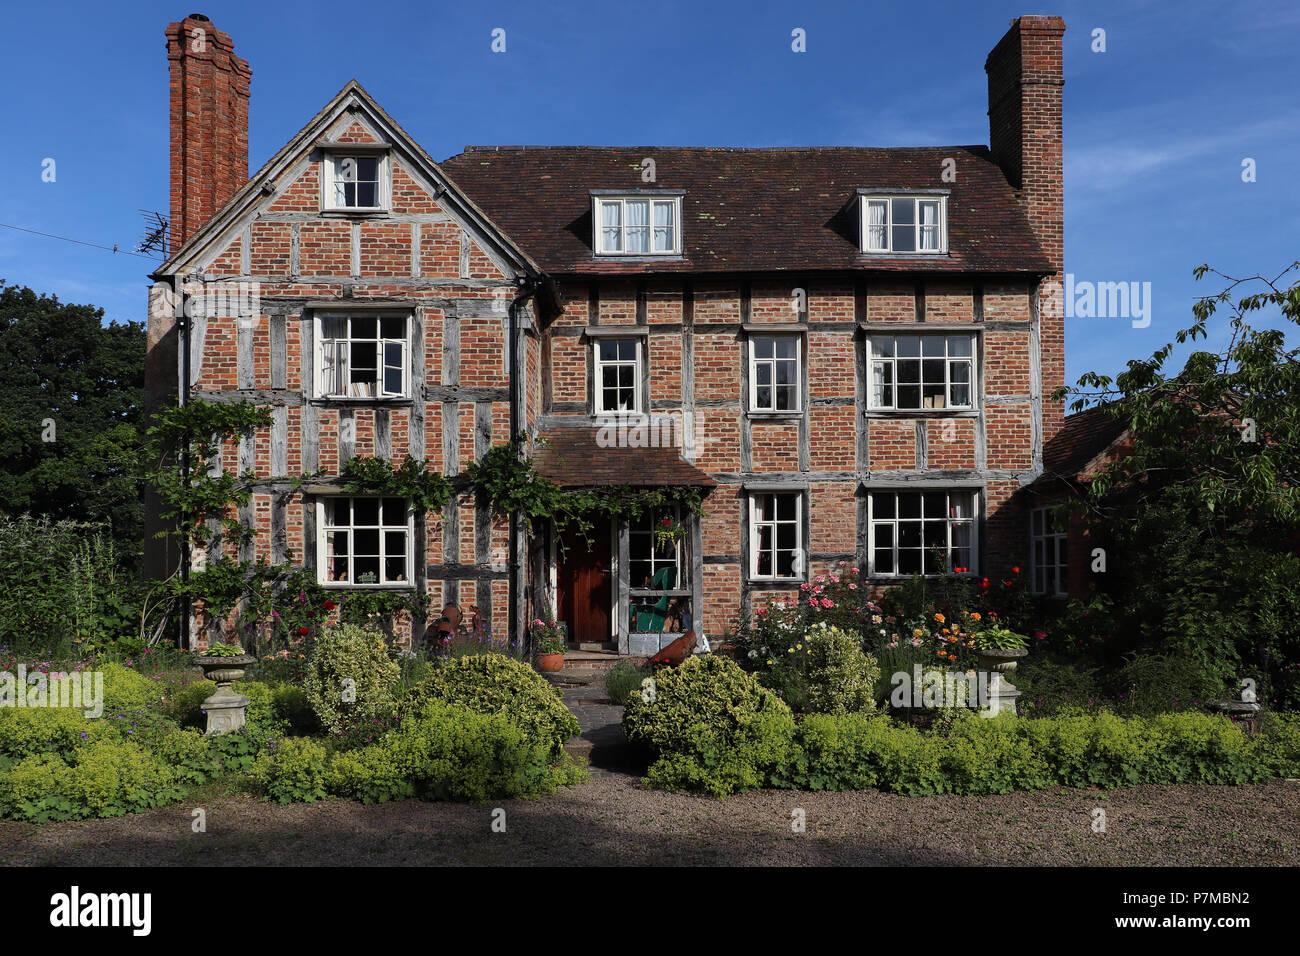 Lovely three story 17th C. country house in England constructed with brick infill on a timber frame, the timbers exposed, large chimneys, & wisteria Stock Photo